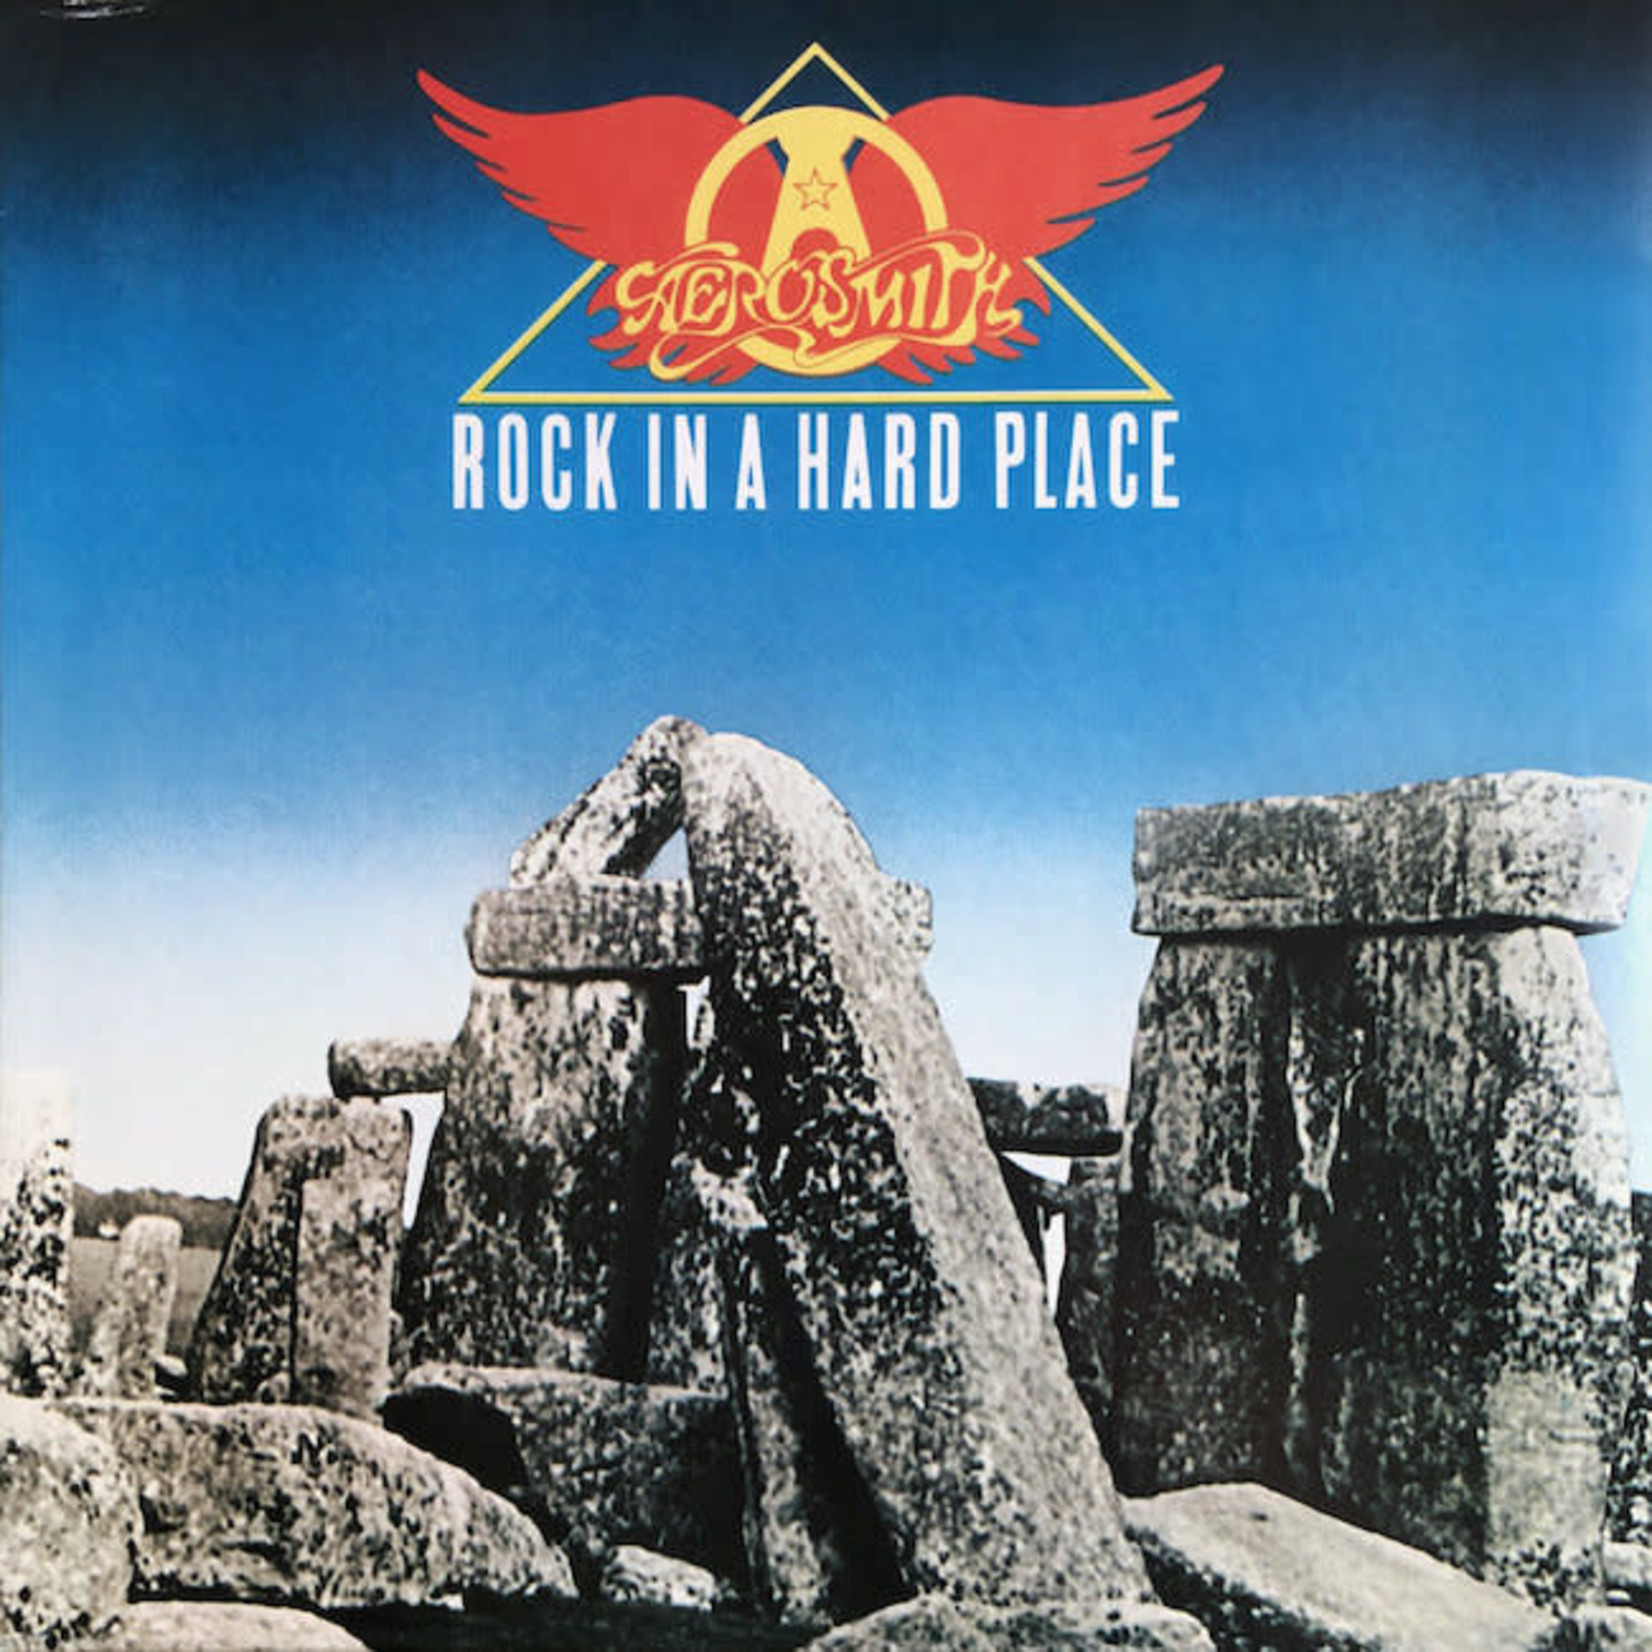 [Vintage] Aerosmith: Rock in a Hard Place